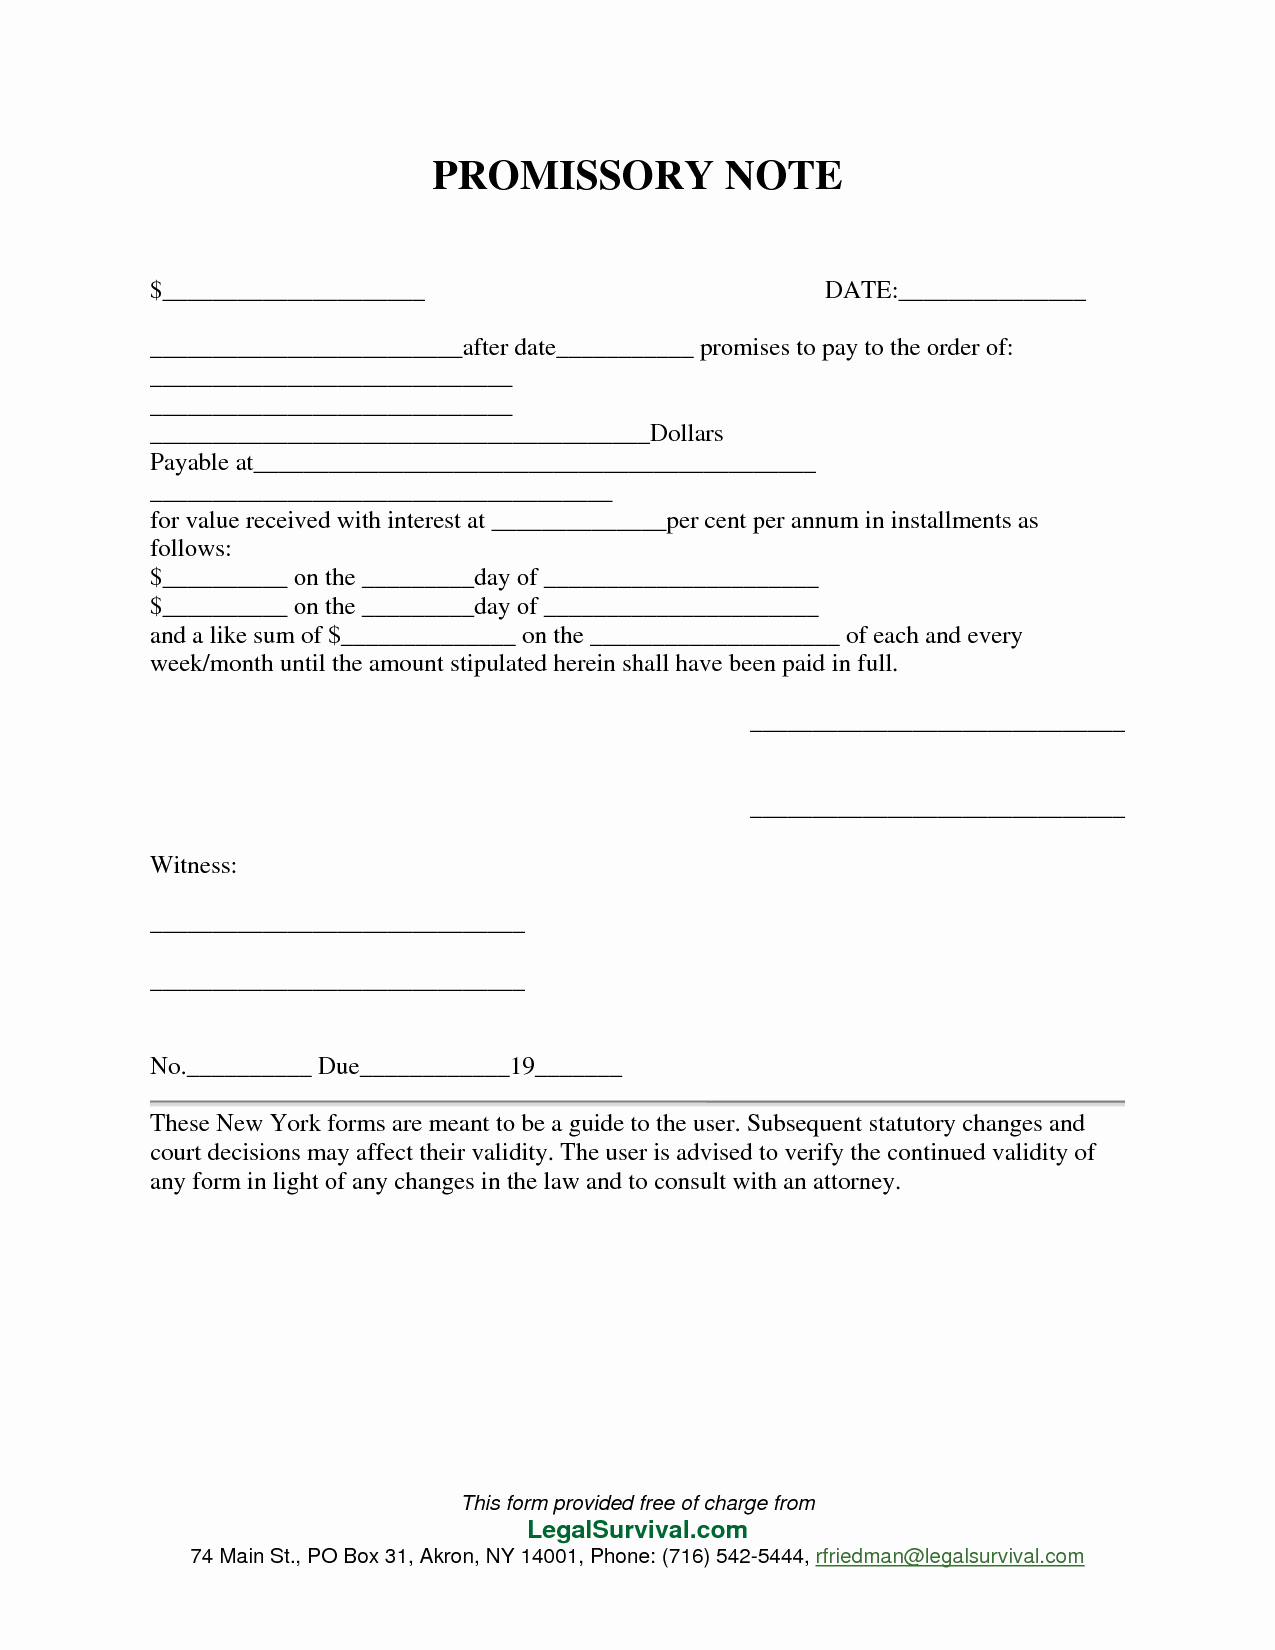 Free Promissory Note Template Word New Free Promissory Note Template Pdf Free Download